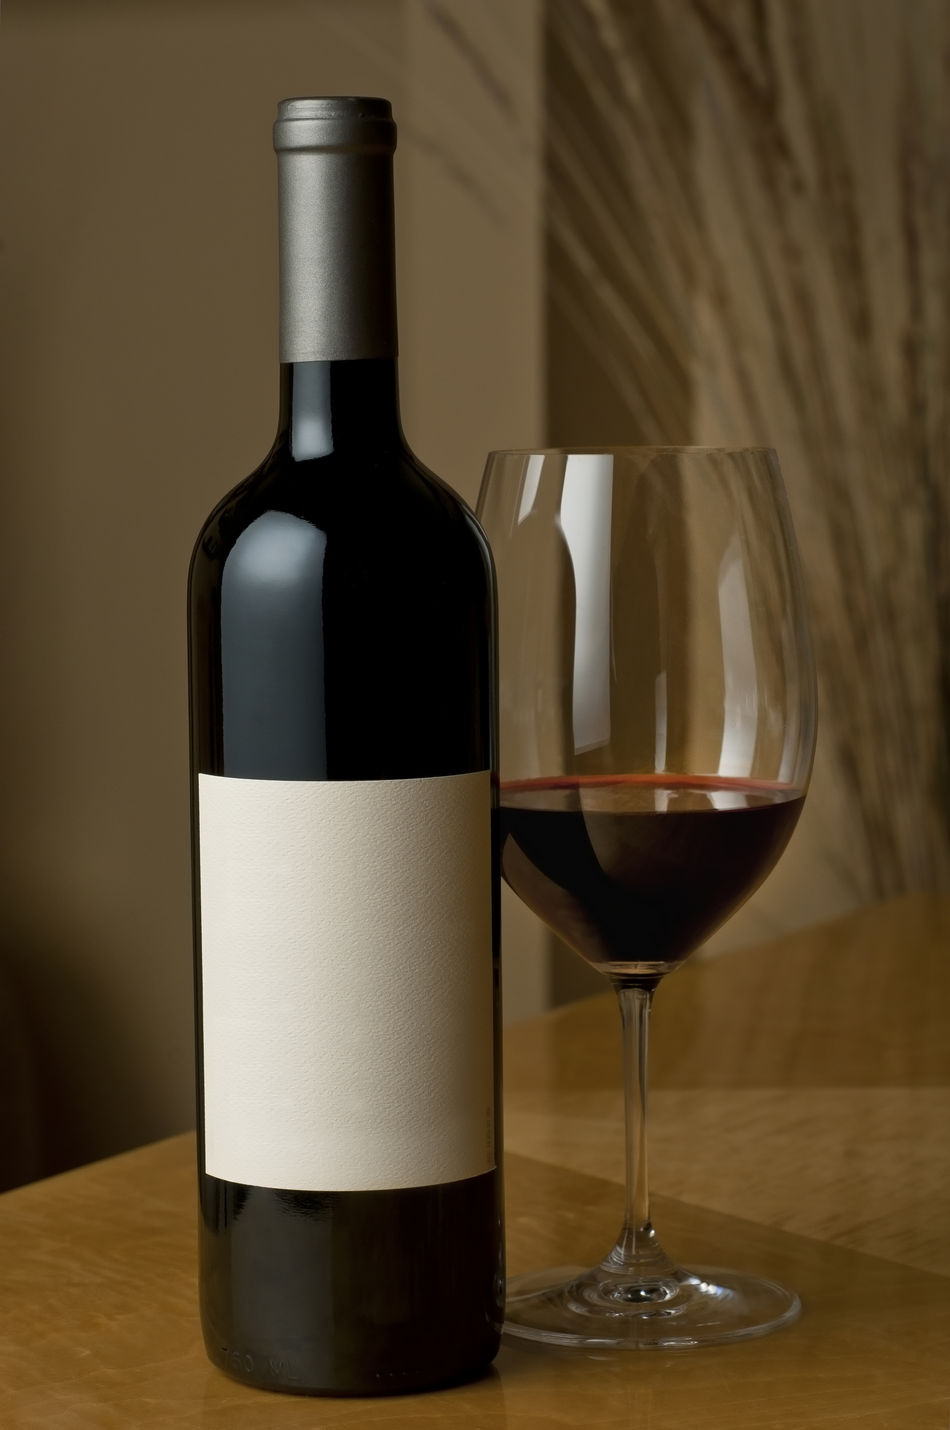 Wine bottle and glass Alcohol Beverage Blank Bottle Cabernet_sauvignon Close-up Focus On Foreground Glass In Indoors  Interior Label Merlot No People No Vintage One One Bottle Product Shot Still Life Table Vertical Composition Wine Bottle